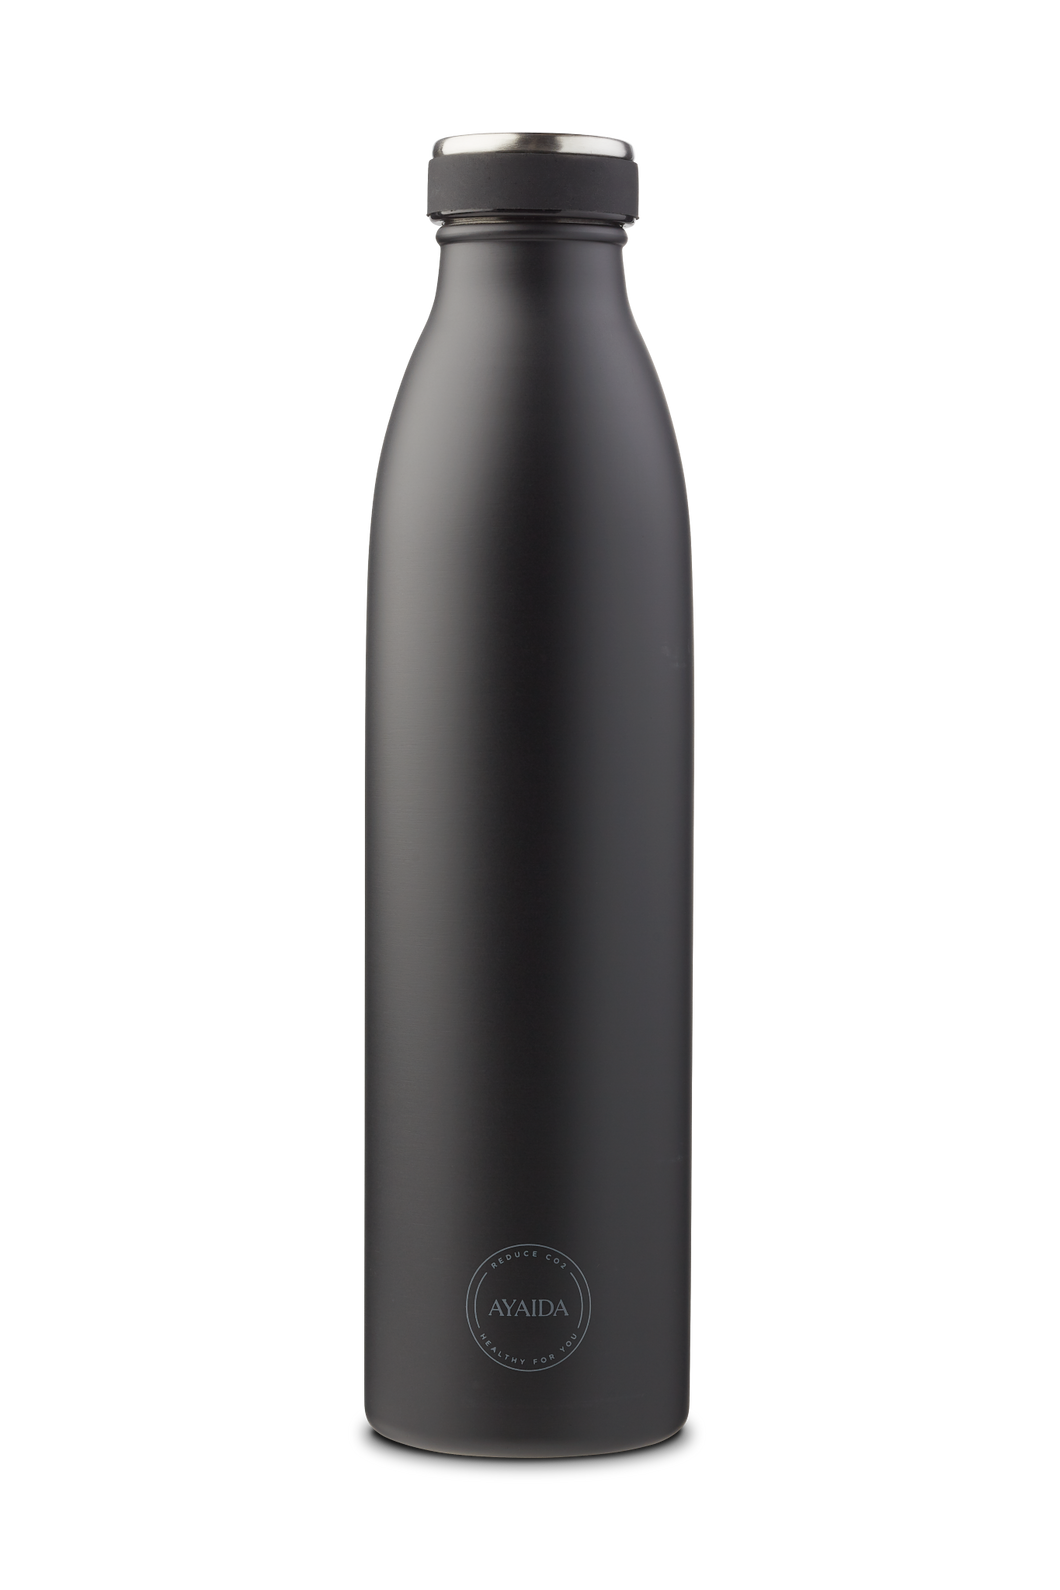 Ayaida Bottle 750ml Matte Black